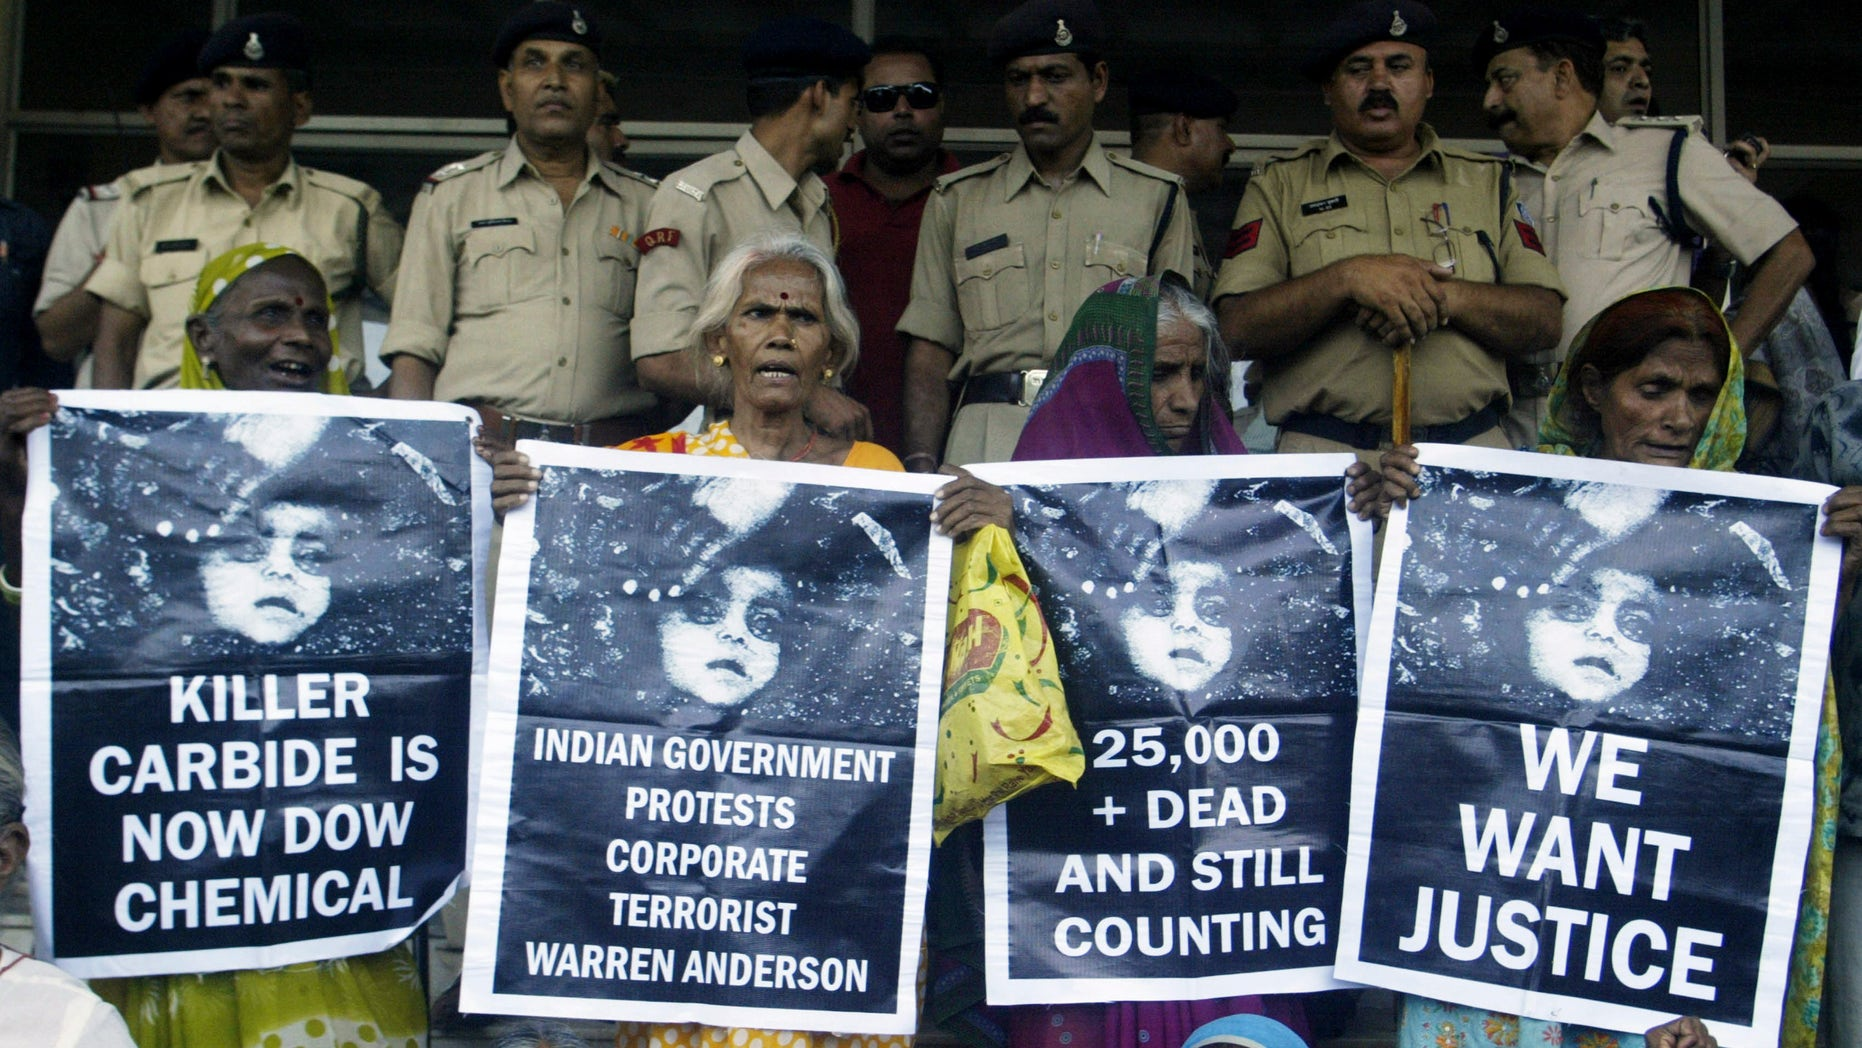 June 7: Victims of Bhopal gas tragedy hold posters during a demonstration outside a court in the central Indian city of Bhopal. An Indian court on Monday sentenced seven people to two years each in prison for negligence in failing to prevent one of the world's worst industrial accidents that killed thousands of people in 1984.